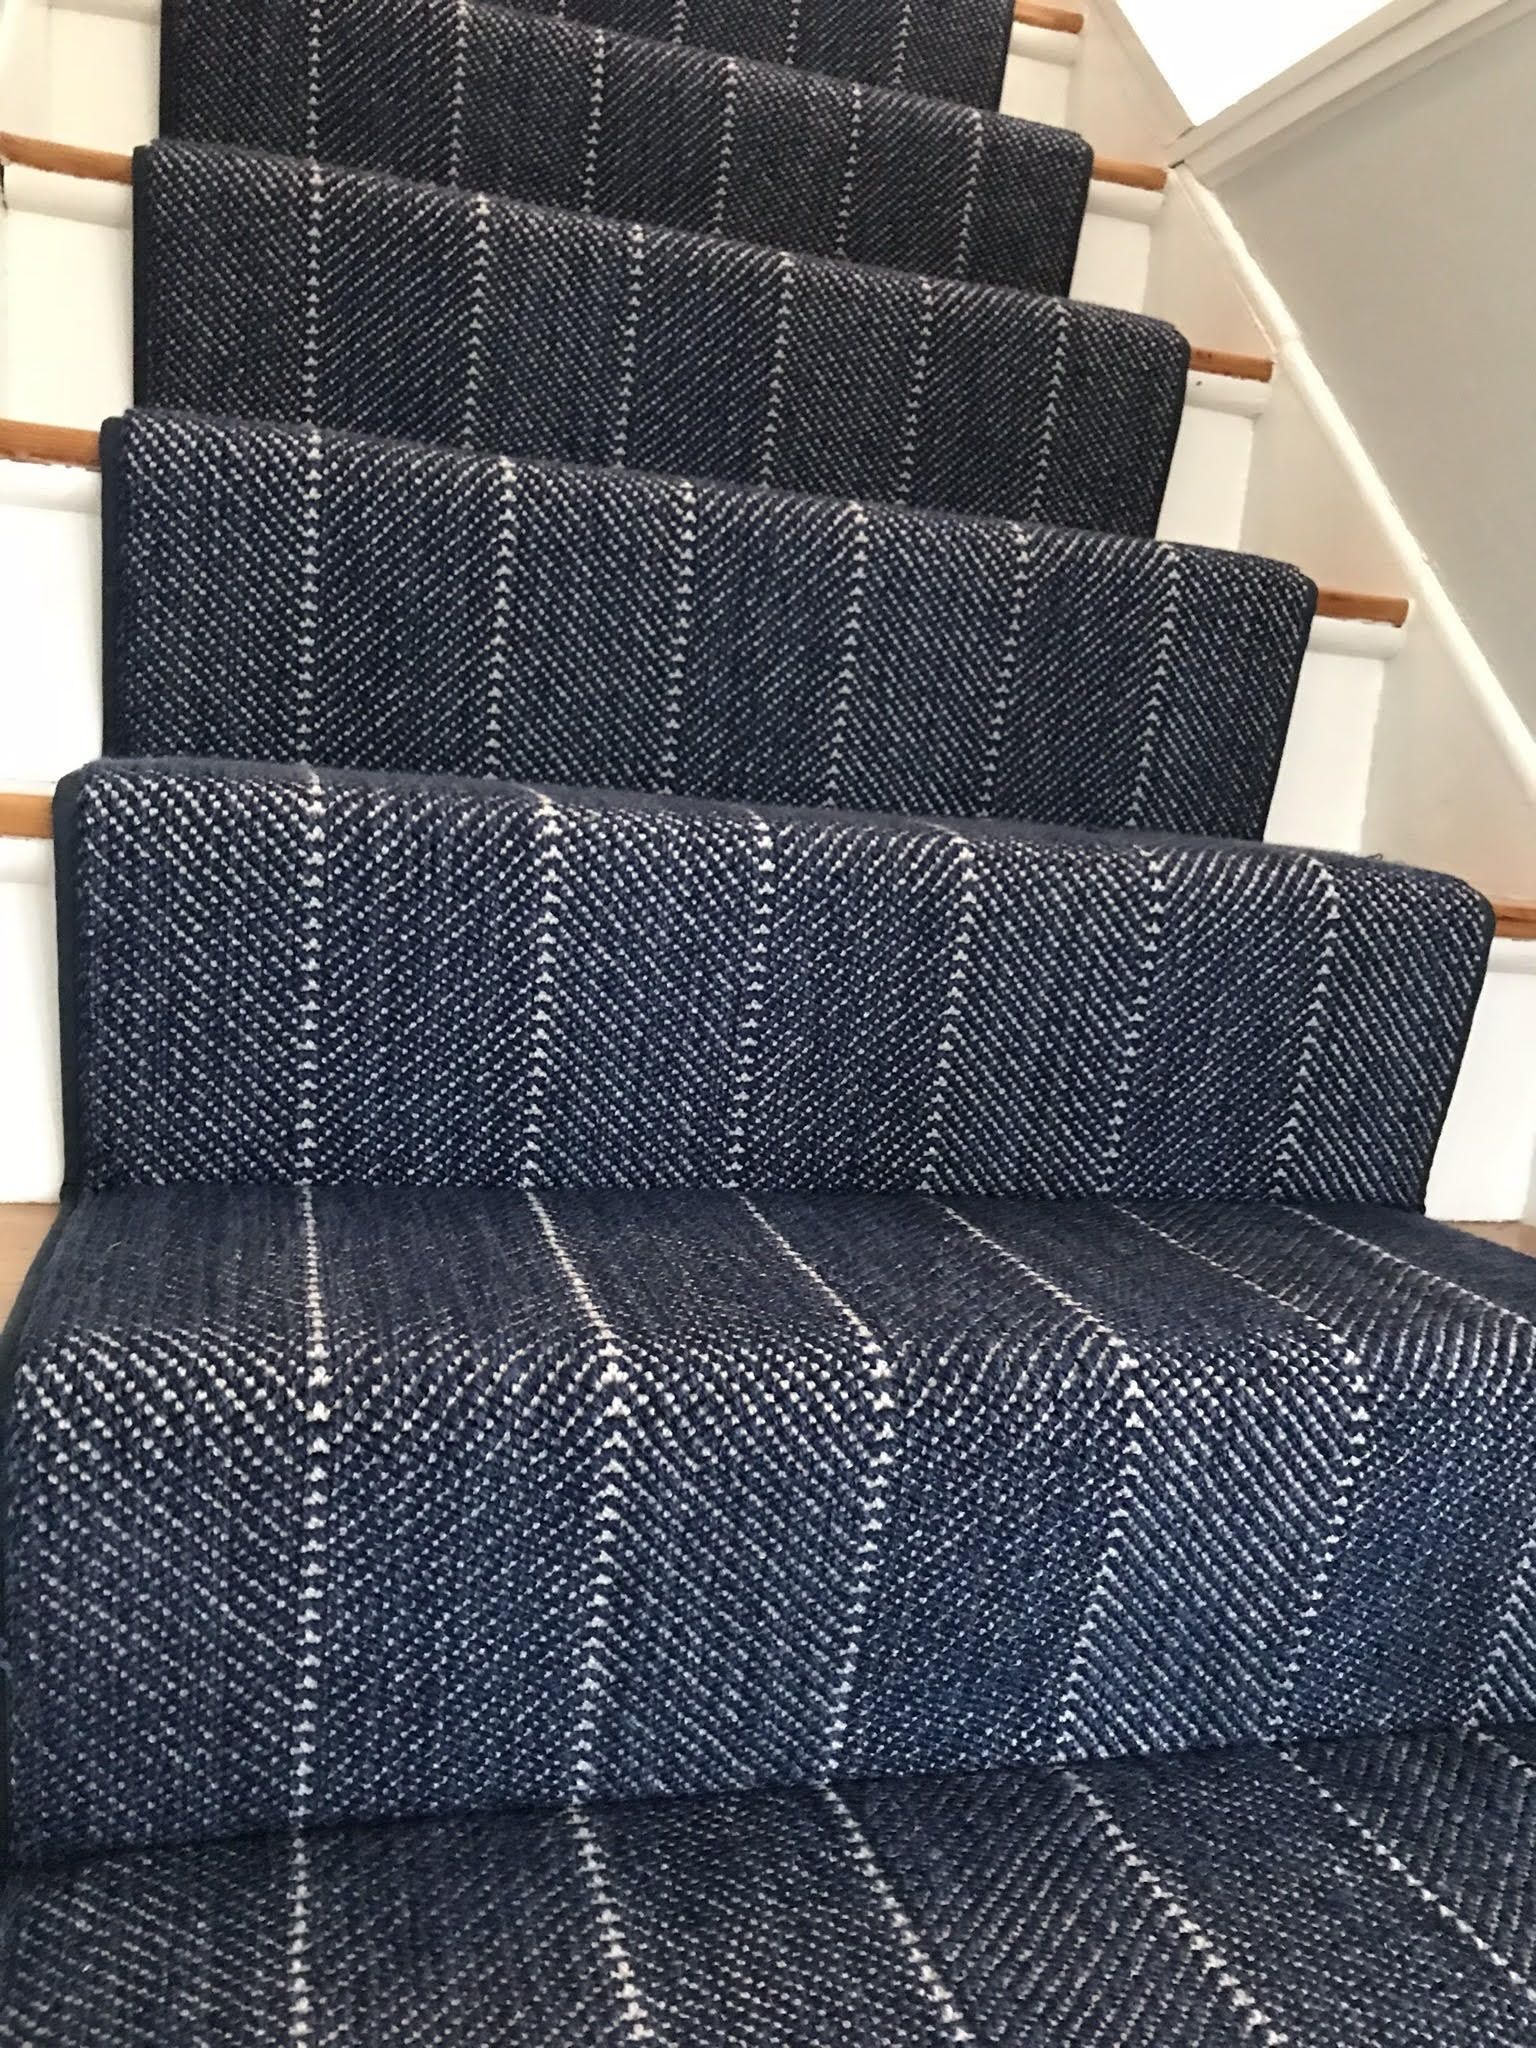 A New Herringbone Stair Runner Install Done Over In Halifax Ma | Stair Carpets Near Me | Basement | Diamond Pattern | Wall To Wall | Berber | Stylish